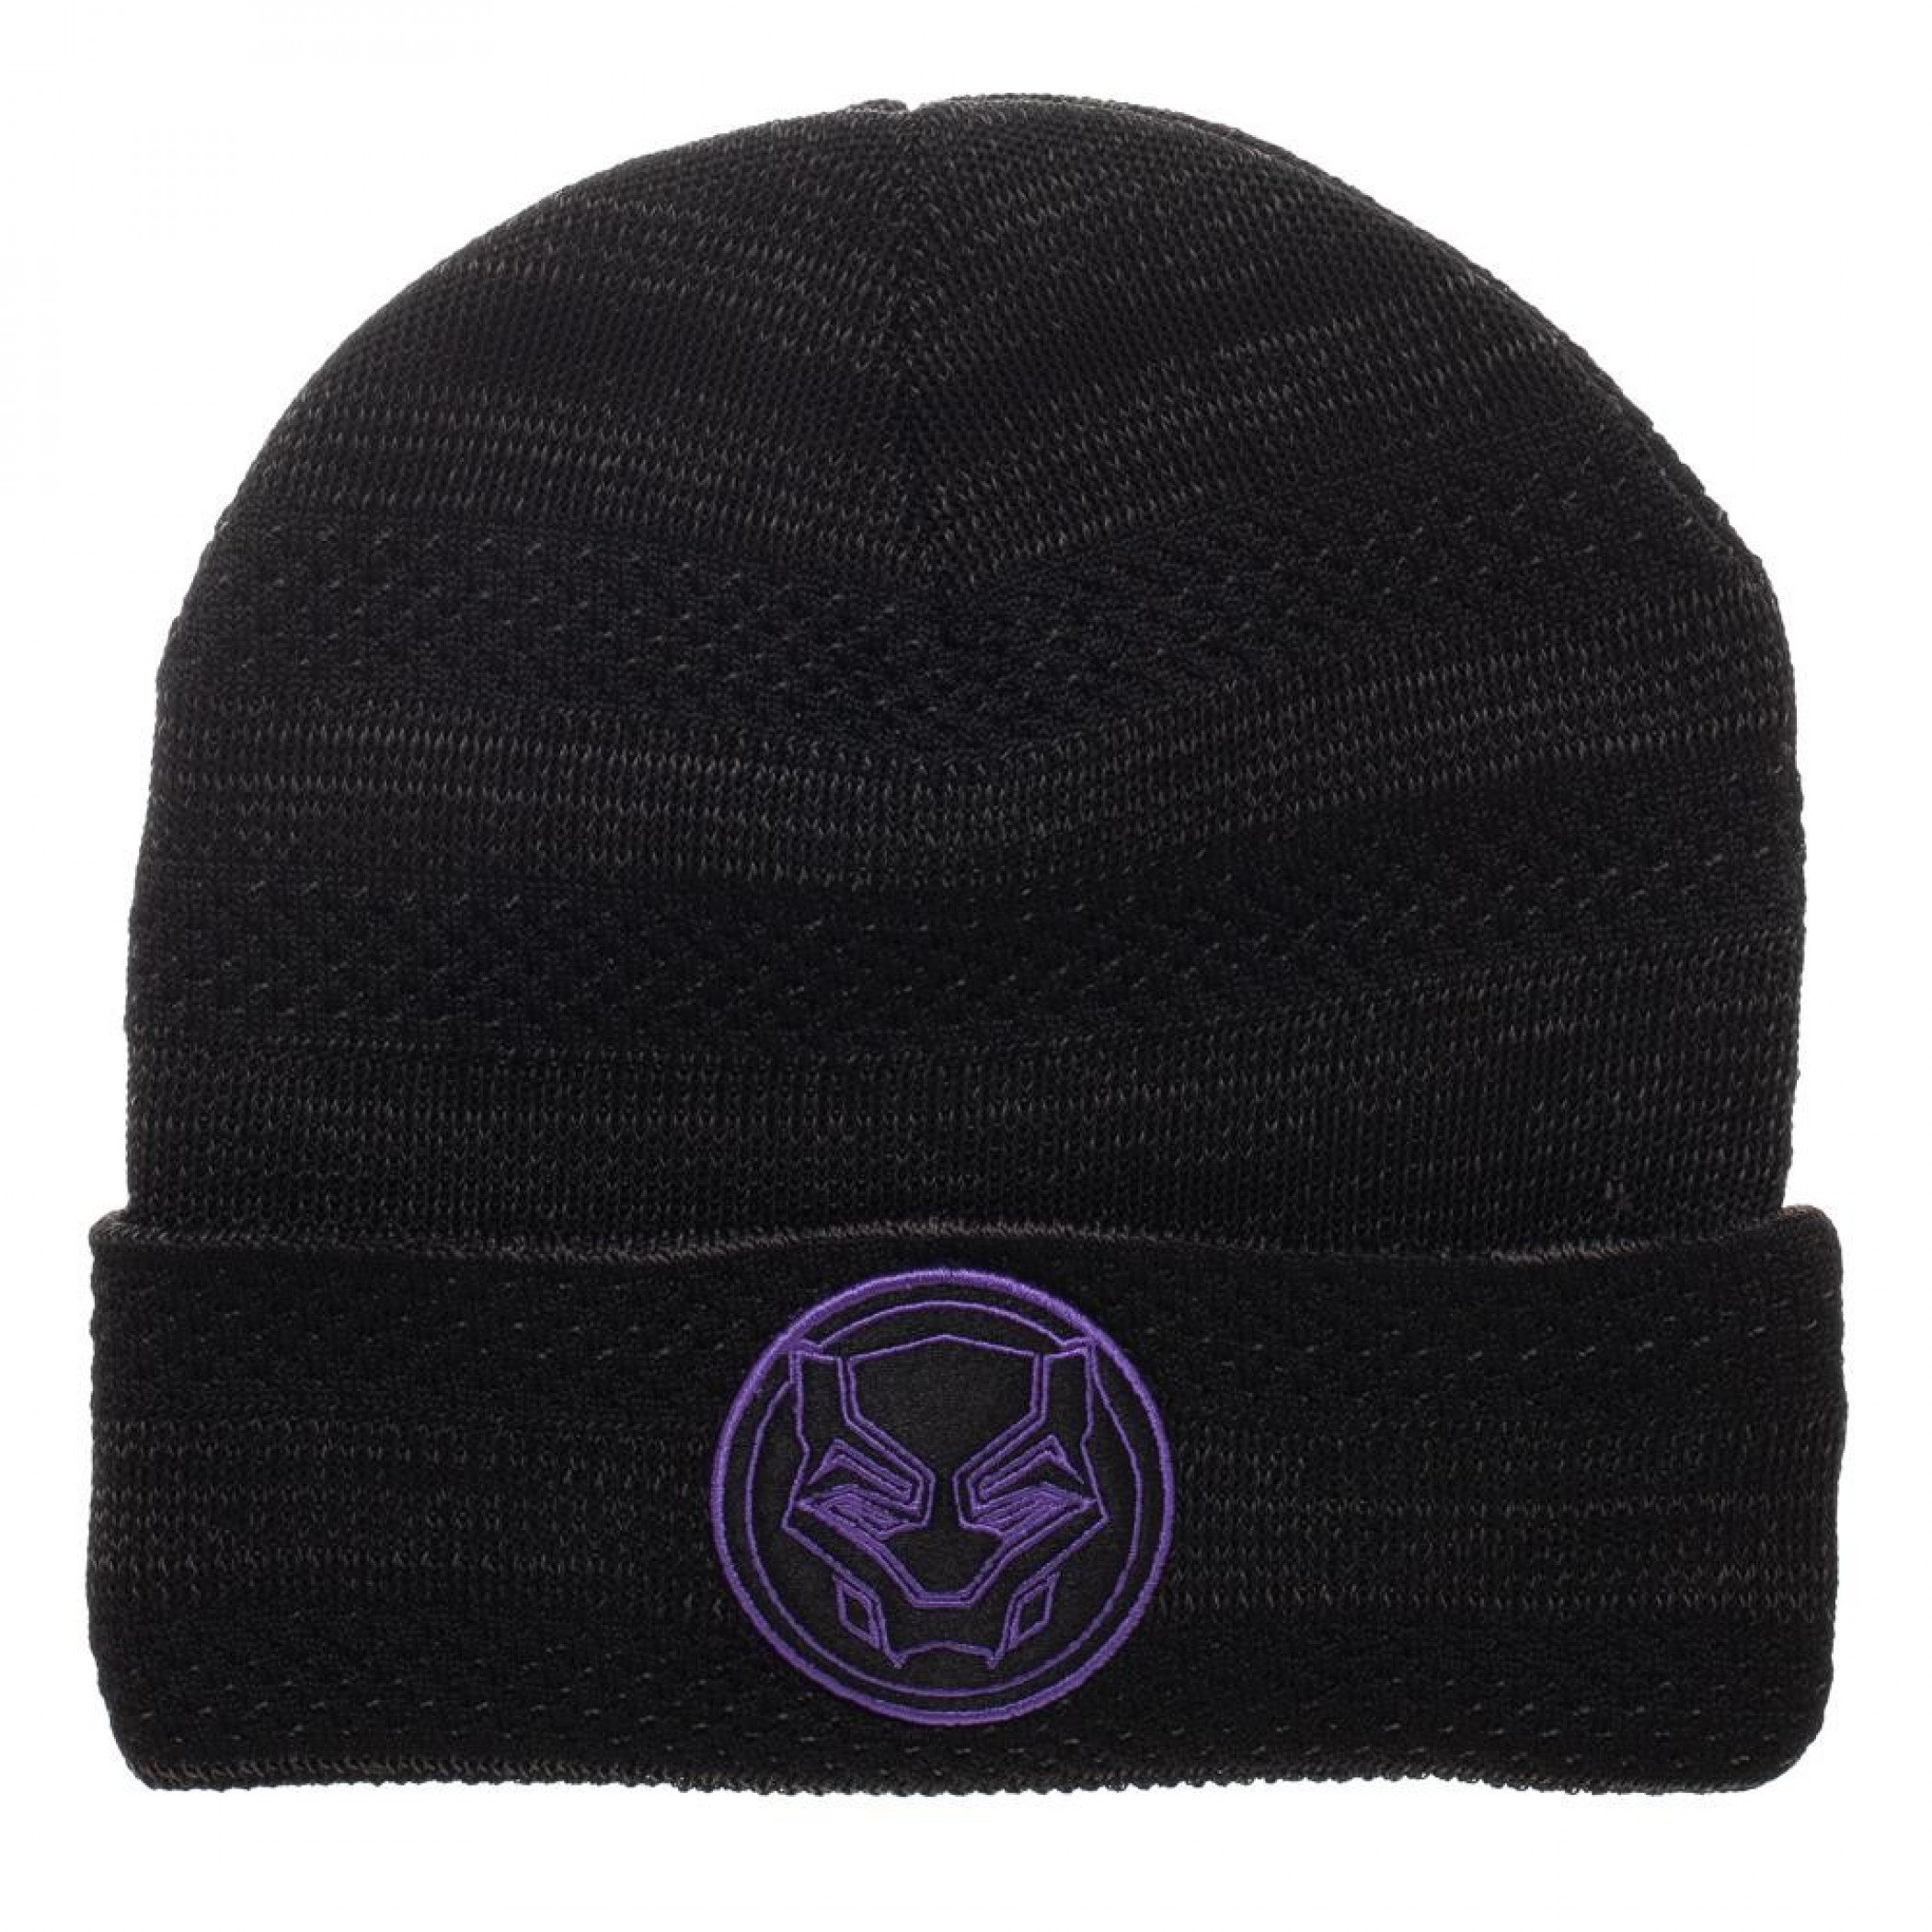 Black Panther Fly Knit Beanie